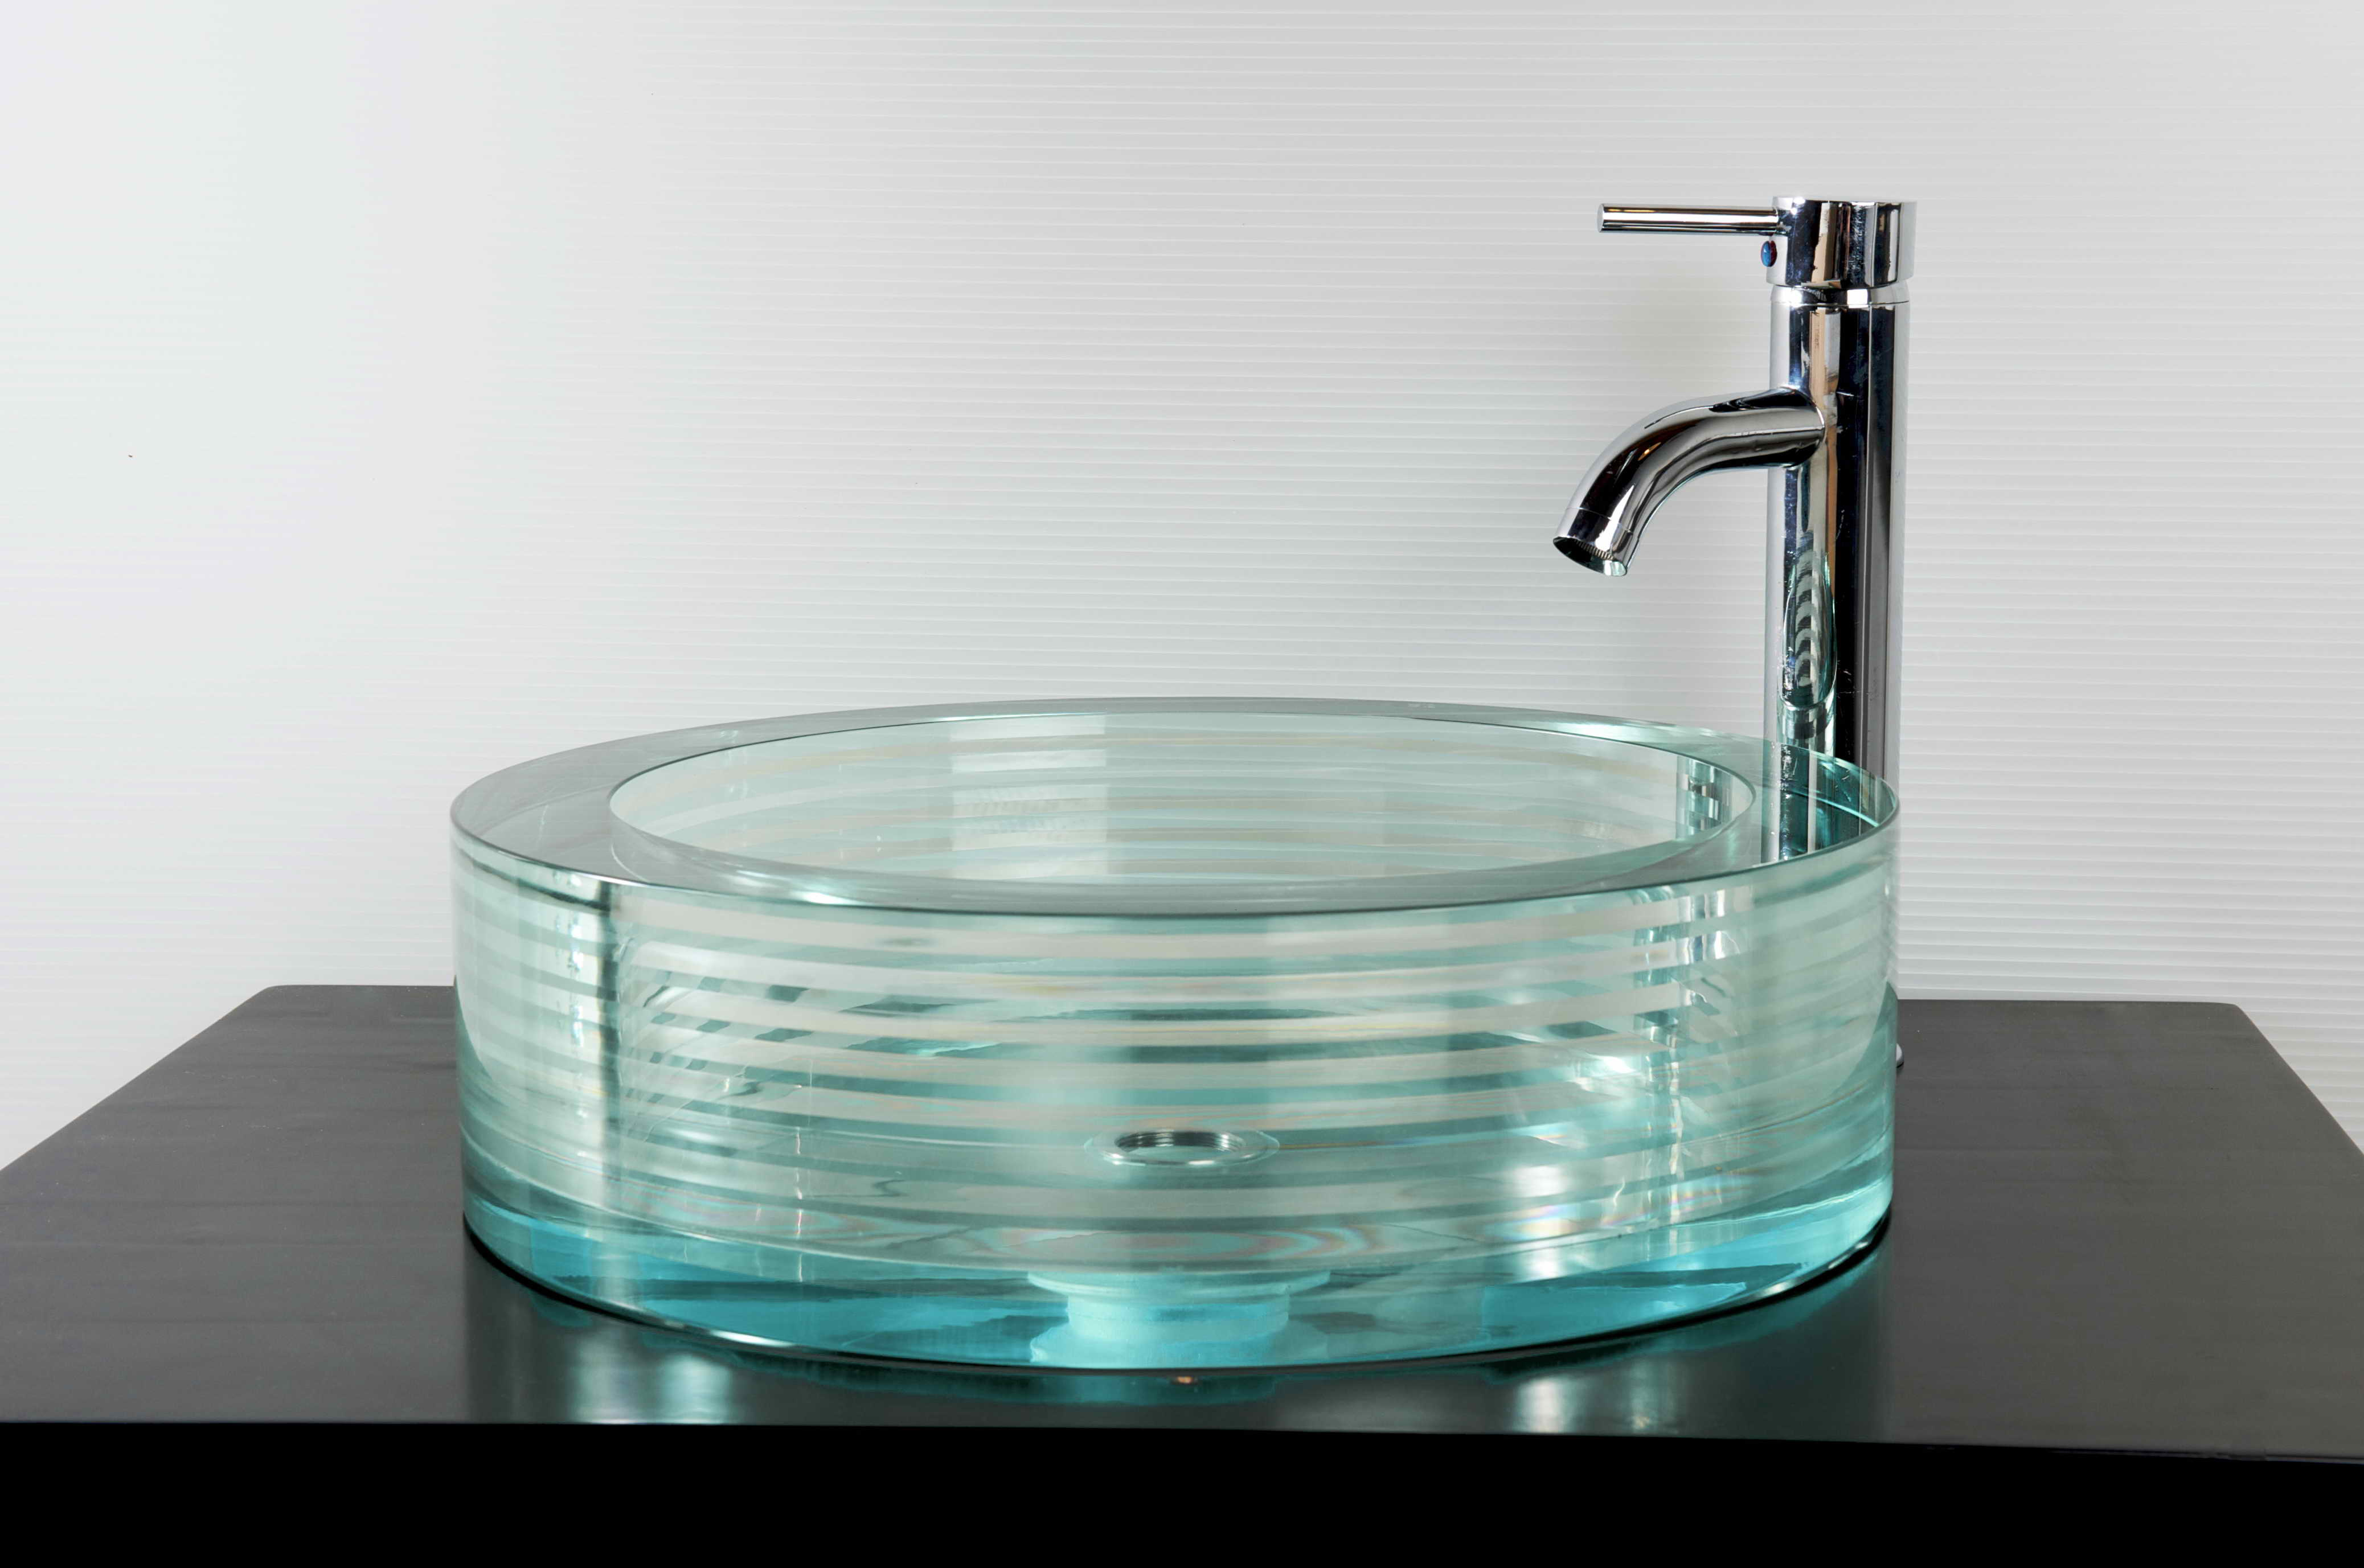 Picture of Round Glass Vessel Bath Sink